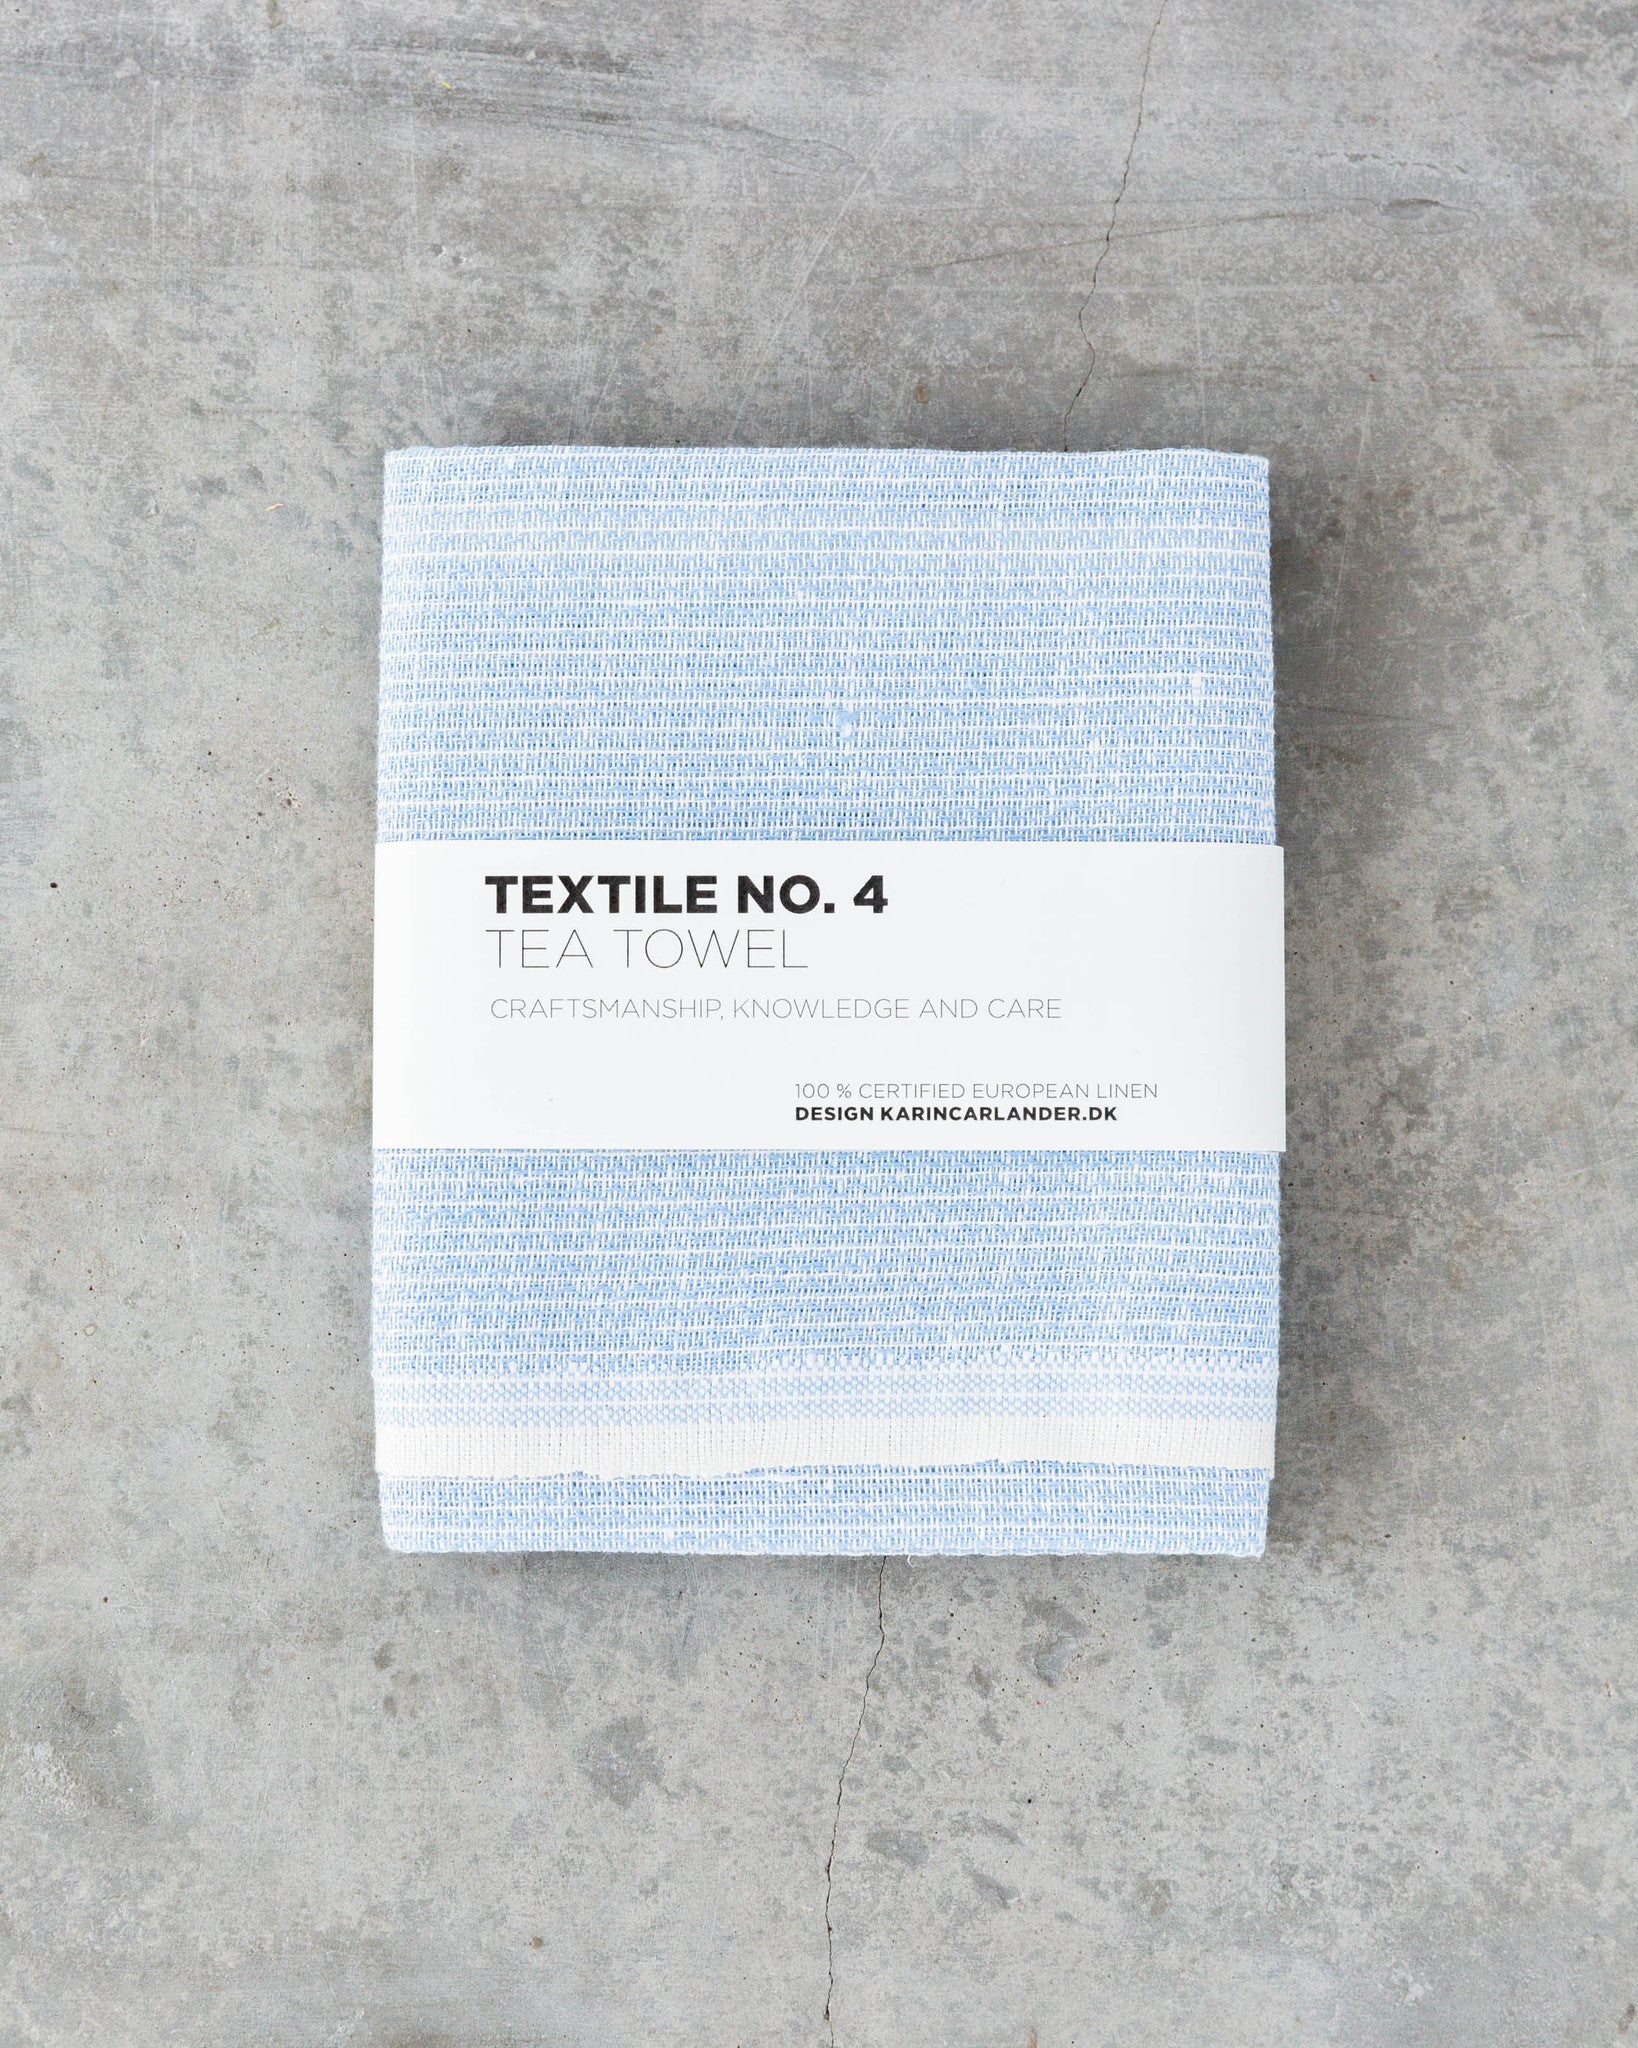 Textile No. 4 Tea Towel Sashiko Light Blue